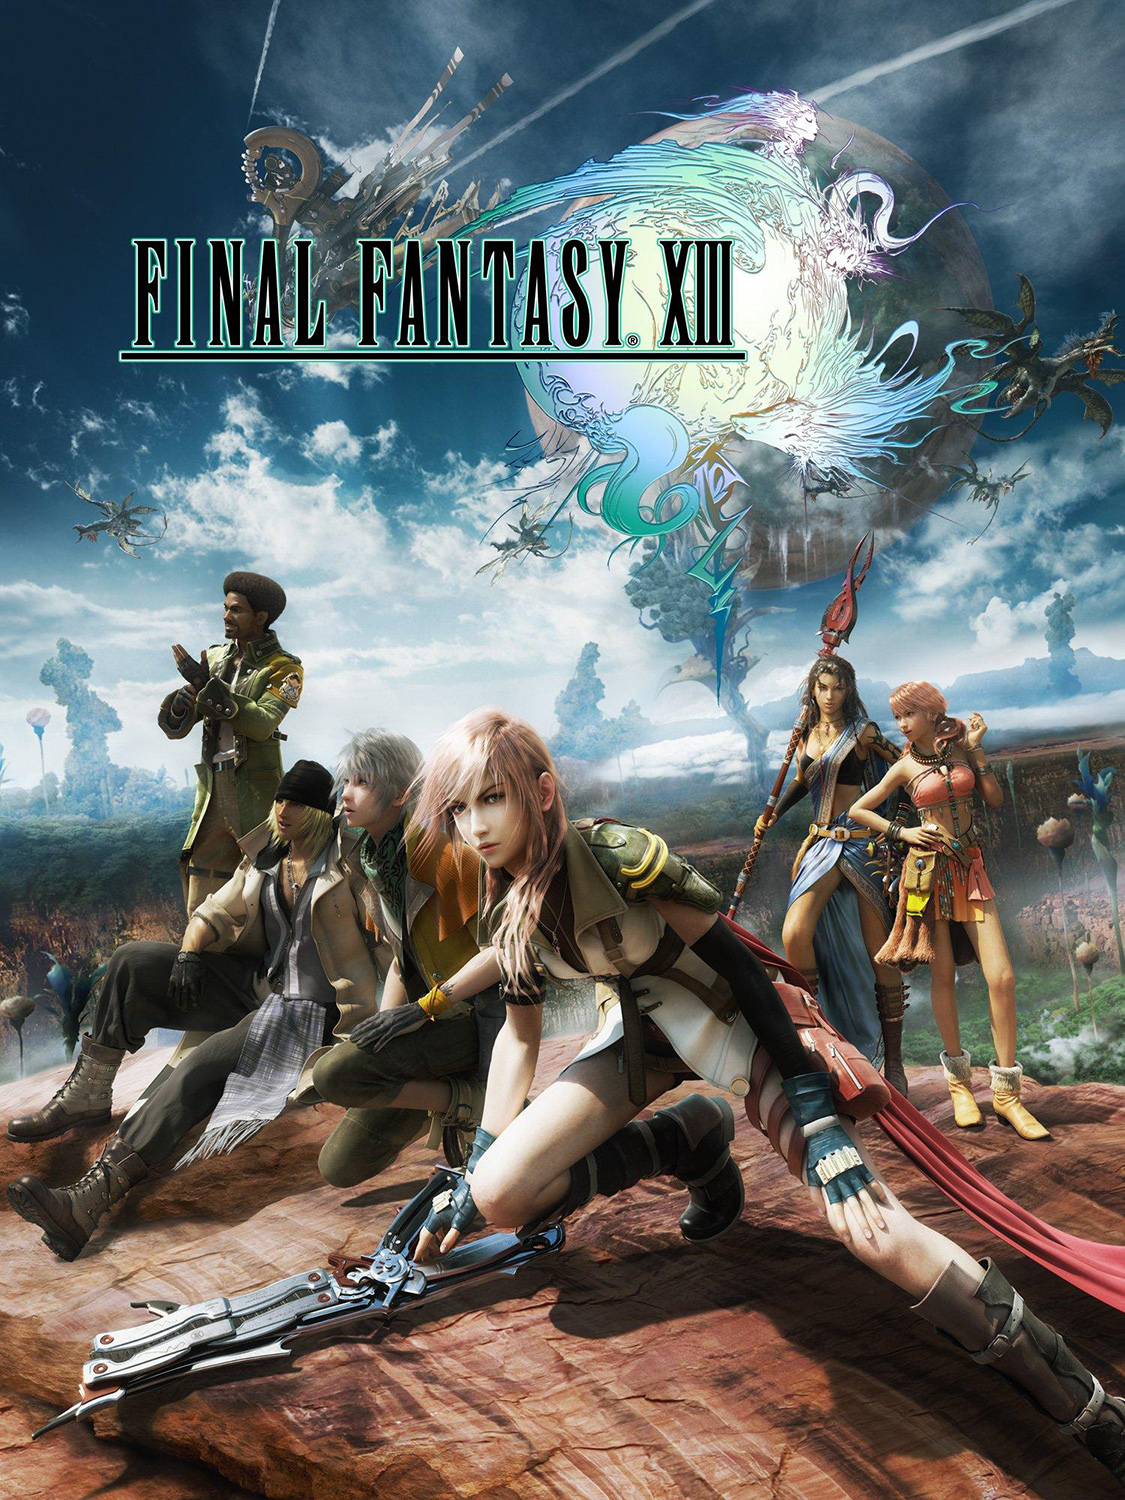 Final Fantasy XVI: Release Date, Story & Gameplay Details